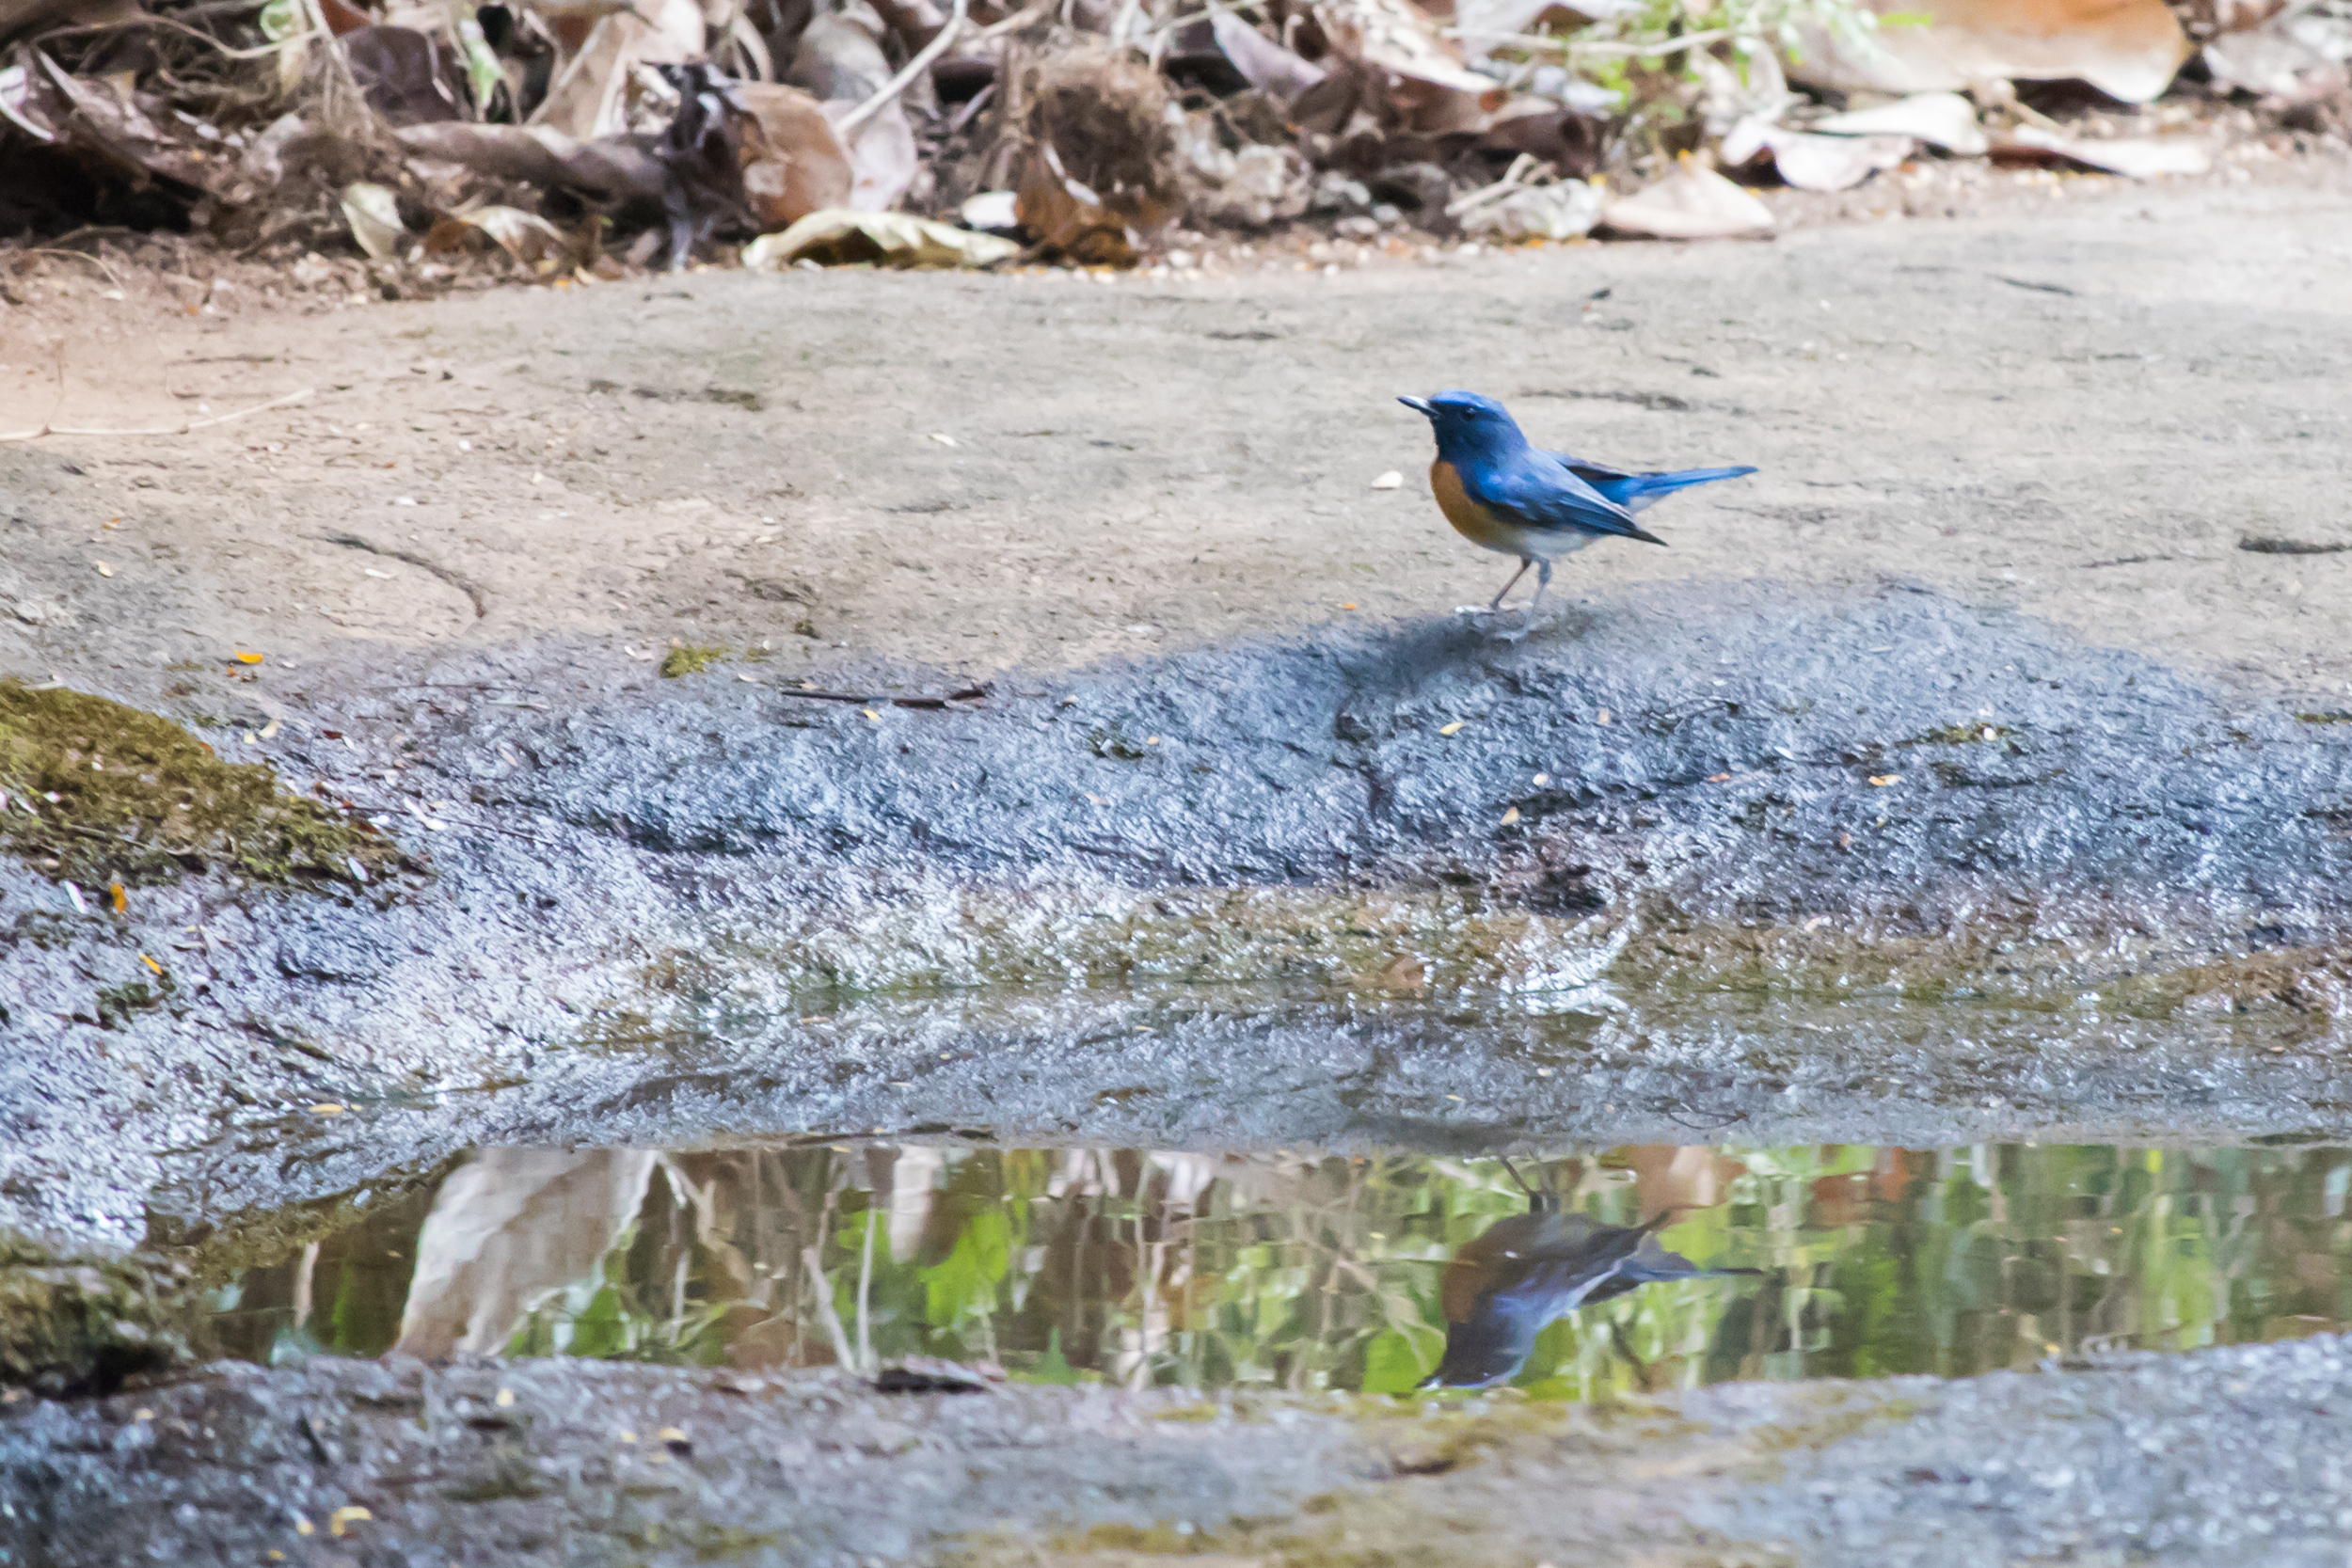 Blue-throated Blue-flycatcher (Cyornis rubeculoides) near Thattekad Bird Sanctuary, Kerala, India. February 2015. Not baited. Not called in.